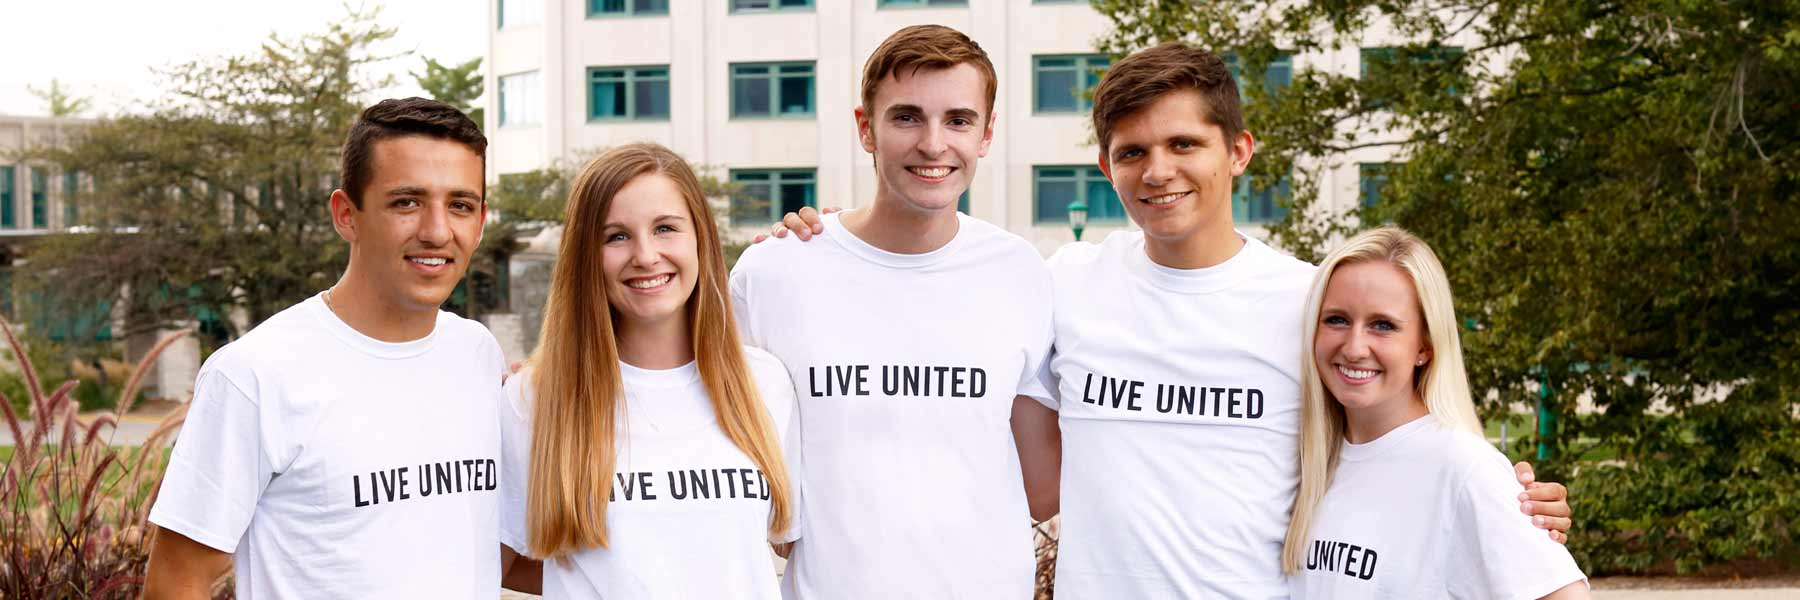 A group of young men and women, all wearing 'Live United' T-shirts, smile with their arms around each other.